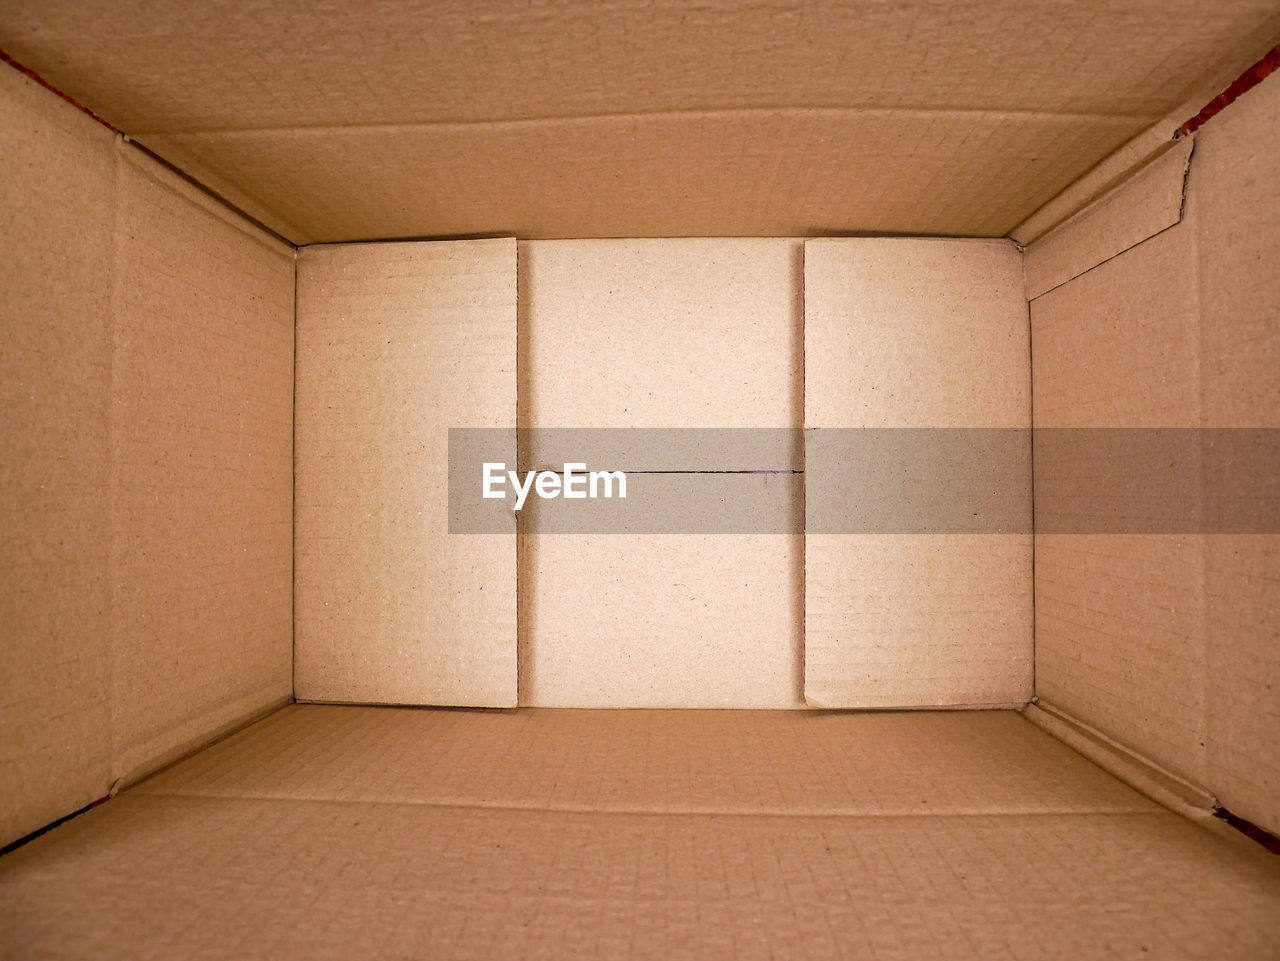 box, cardboard box, cardboard, architecture, indoors, box - container, container, building, brown, domestic room, warehouse, empty, no people, distribution warehouse, freight transportation, industry, crate, business, transportation, paper, package, flooring, carton